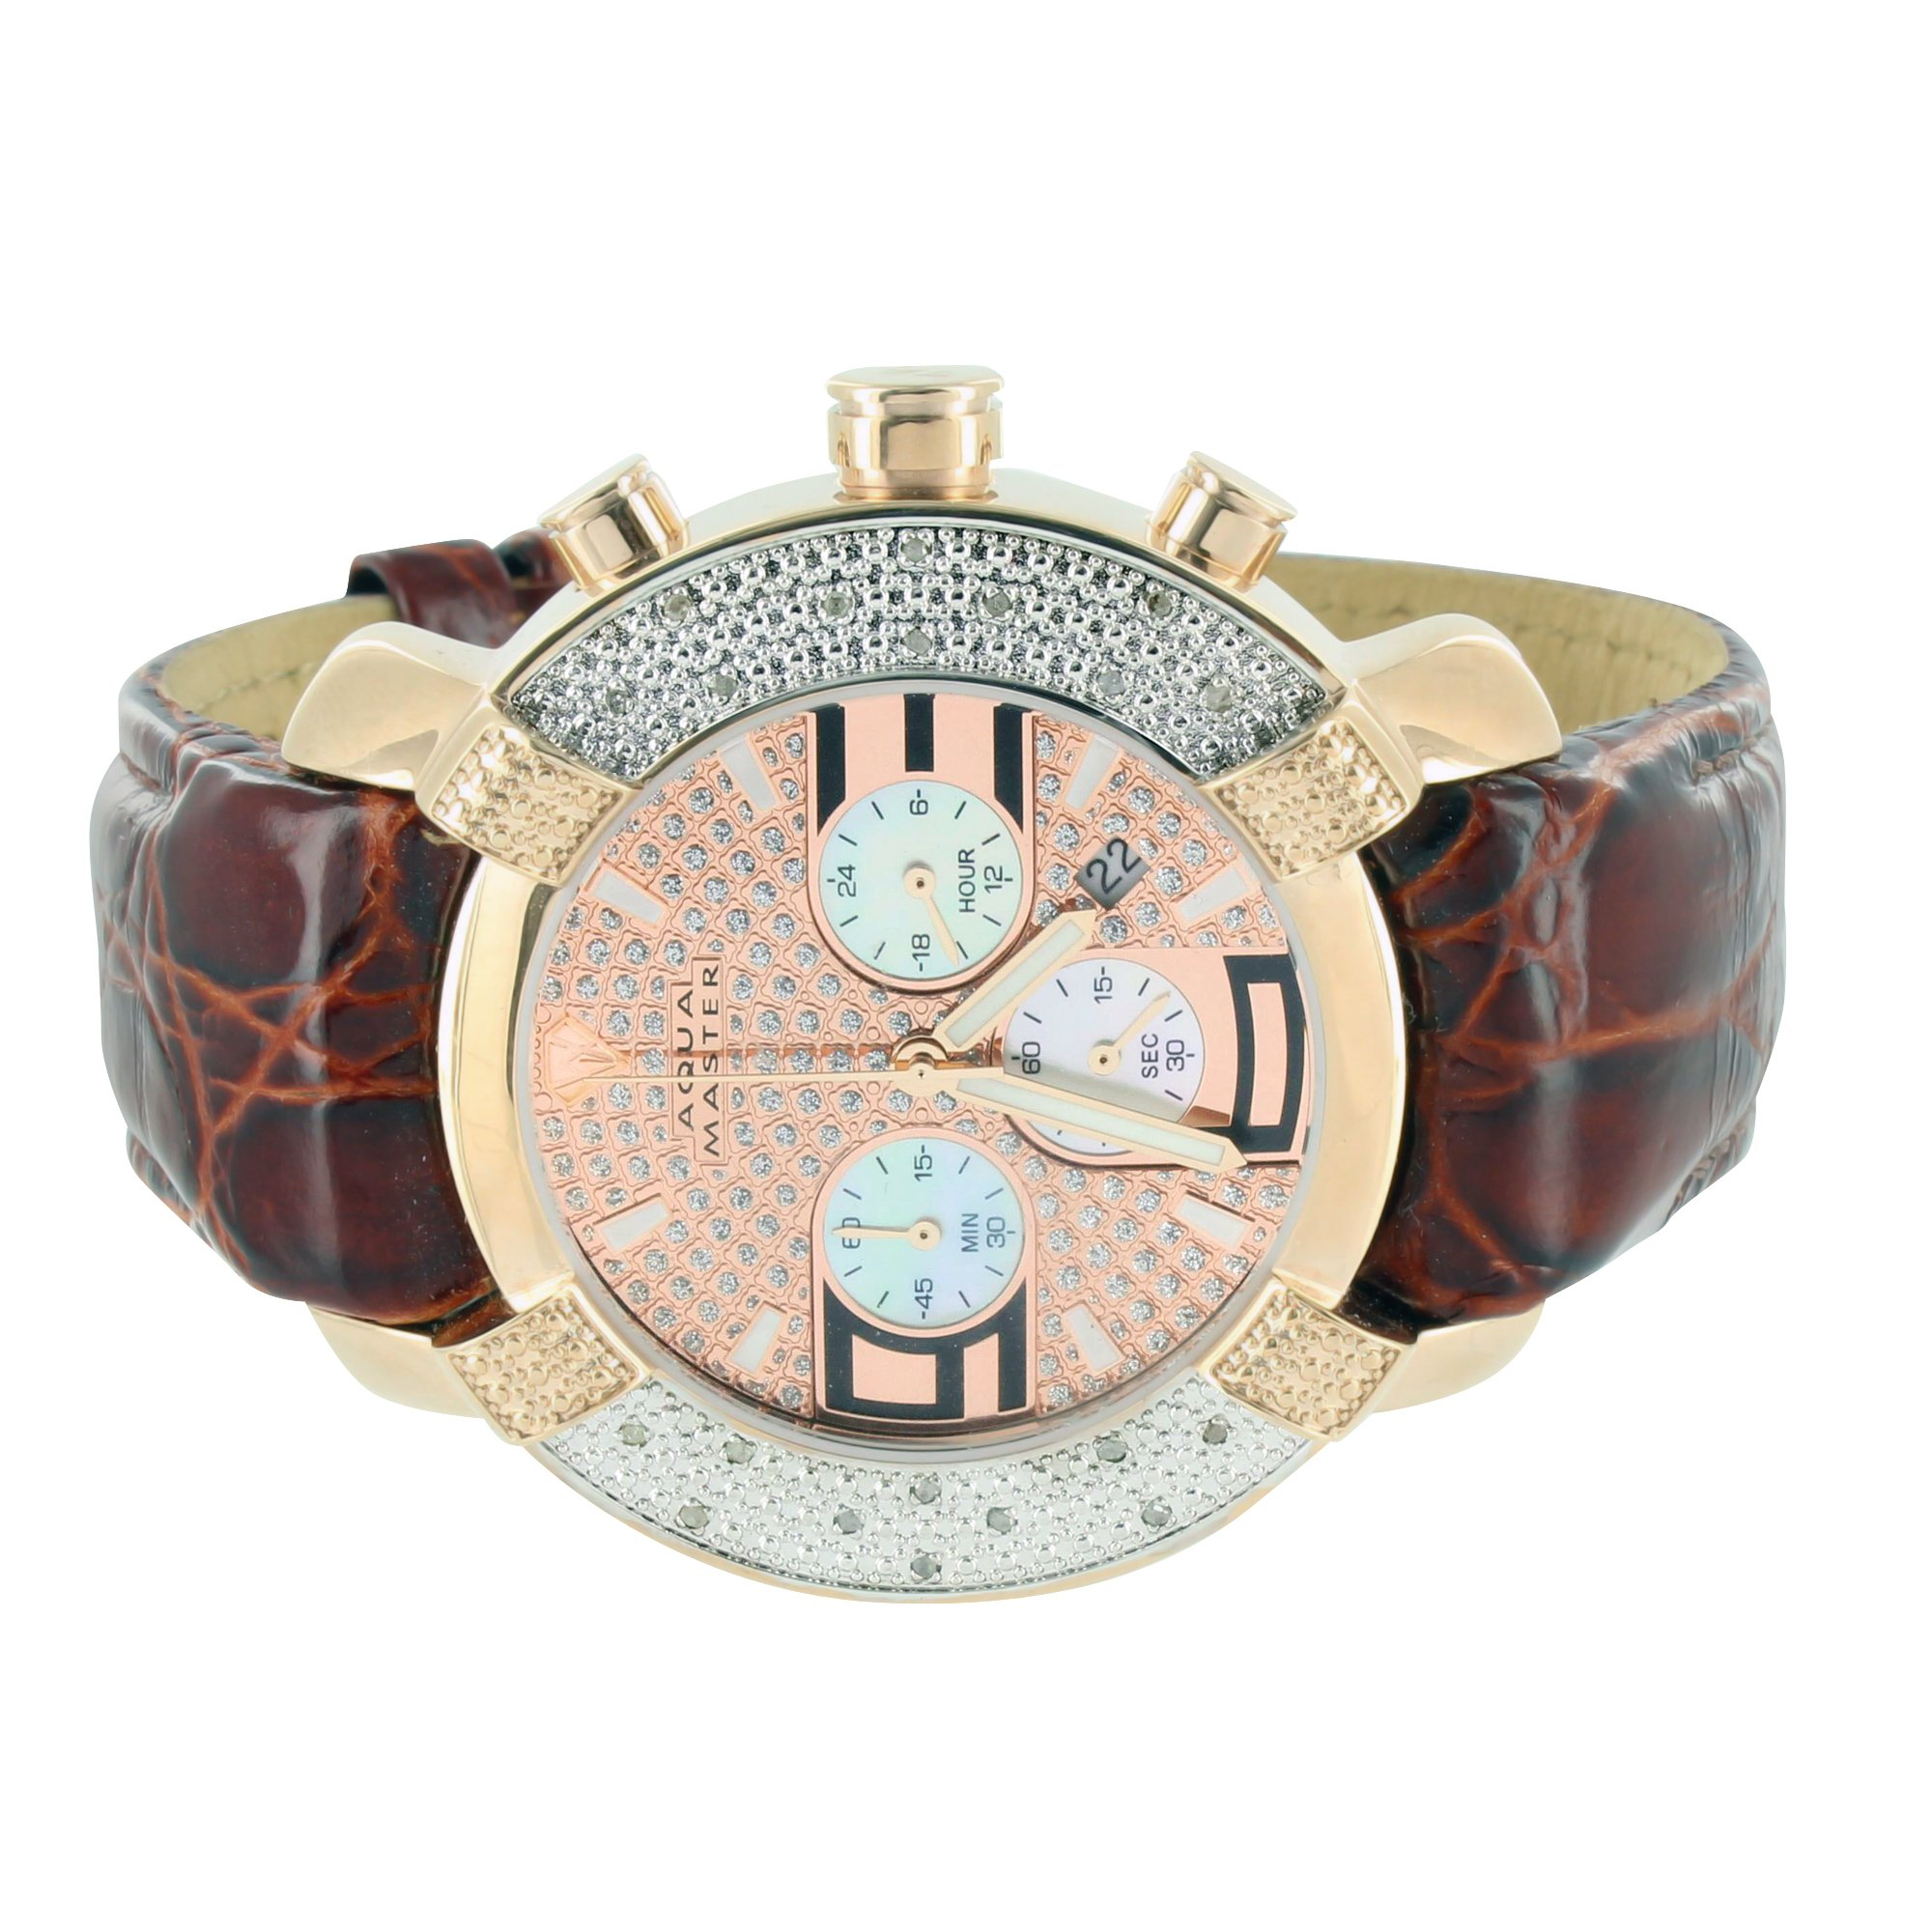 Mens Diamond Watches Crocodile Brown Leather Strap Aqua Master Rose Gold Finish